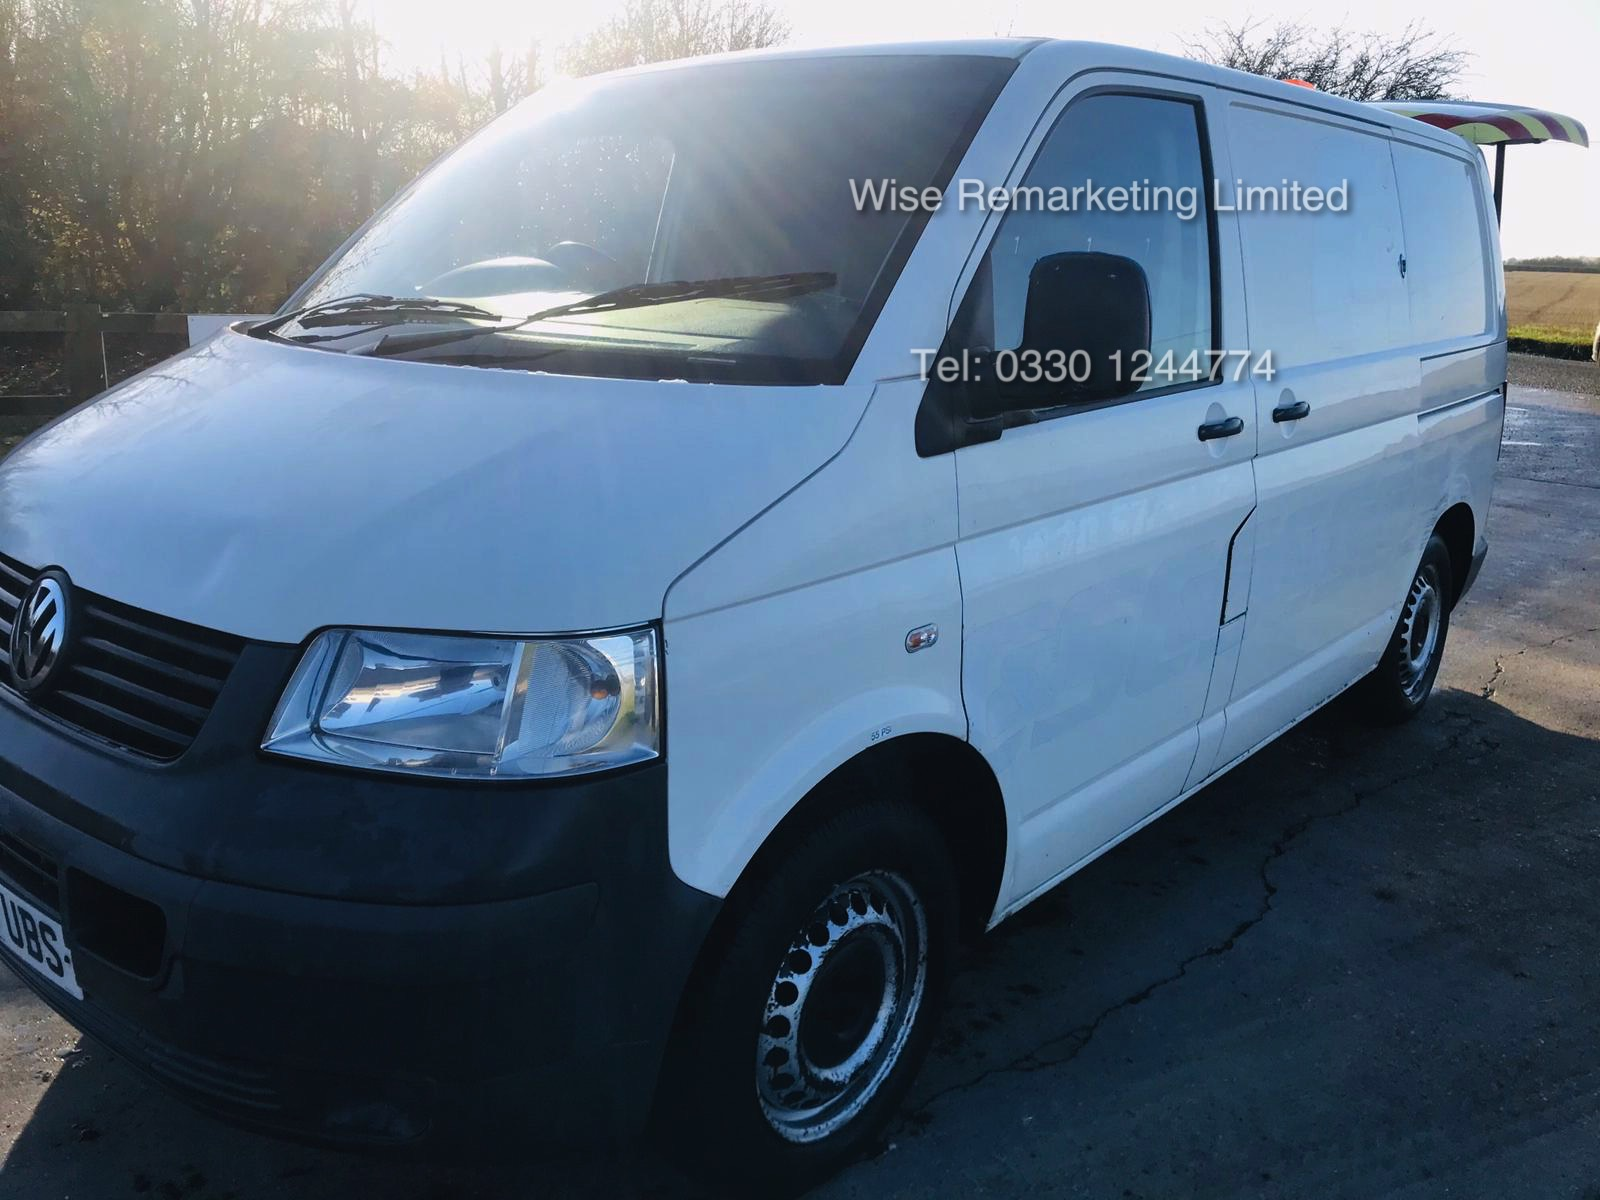 Lot 31 - (RESERVE MET) Volkswagen Transporter T28 1.9 TDI - 2010 Model - Towing Dolly - 1 Keeper From New -